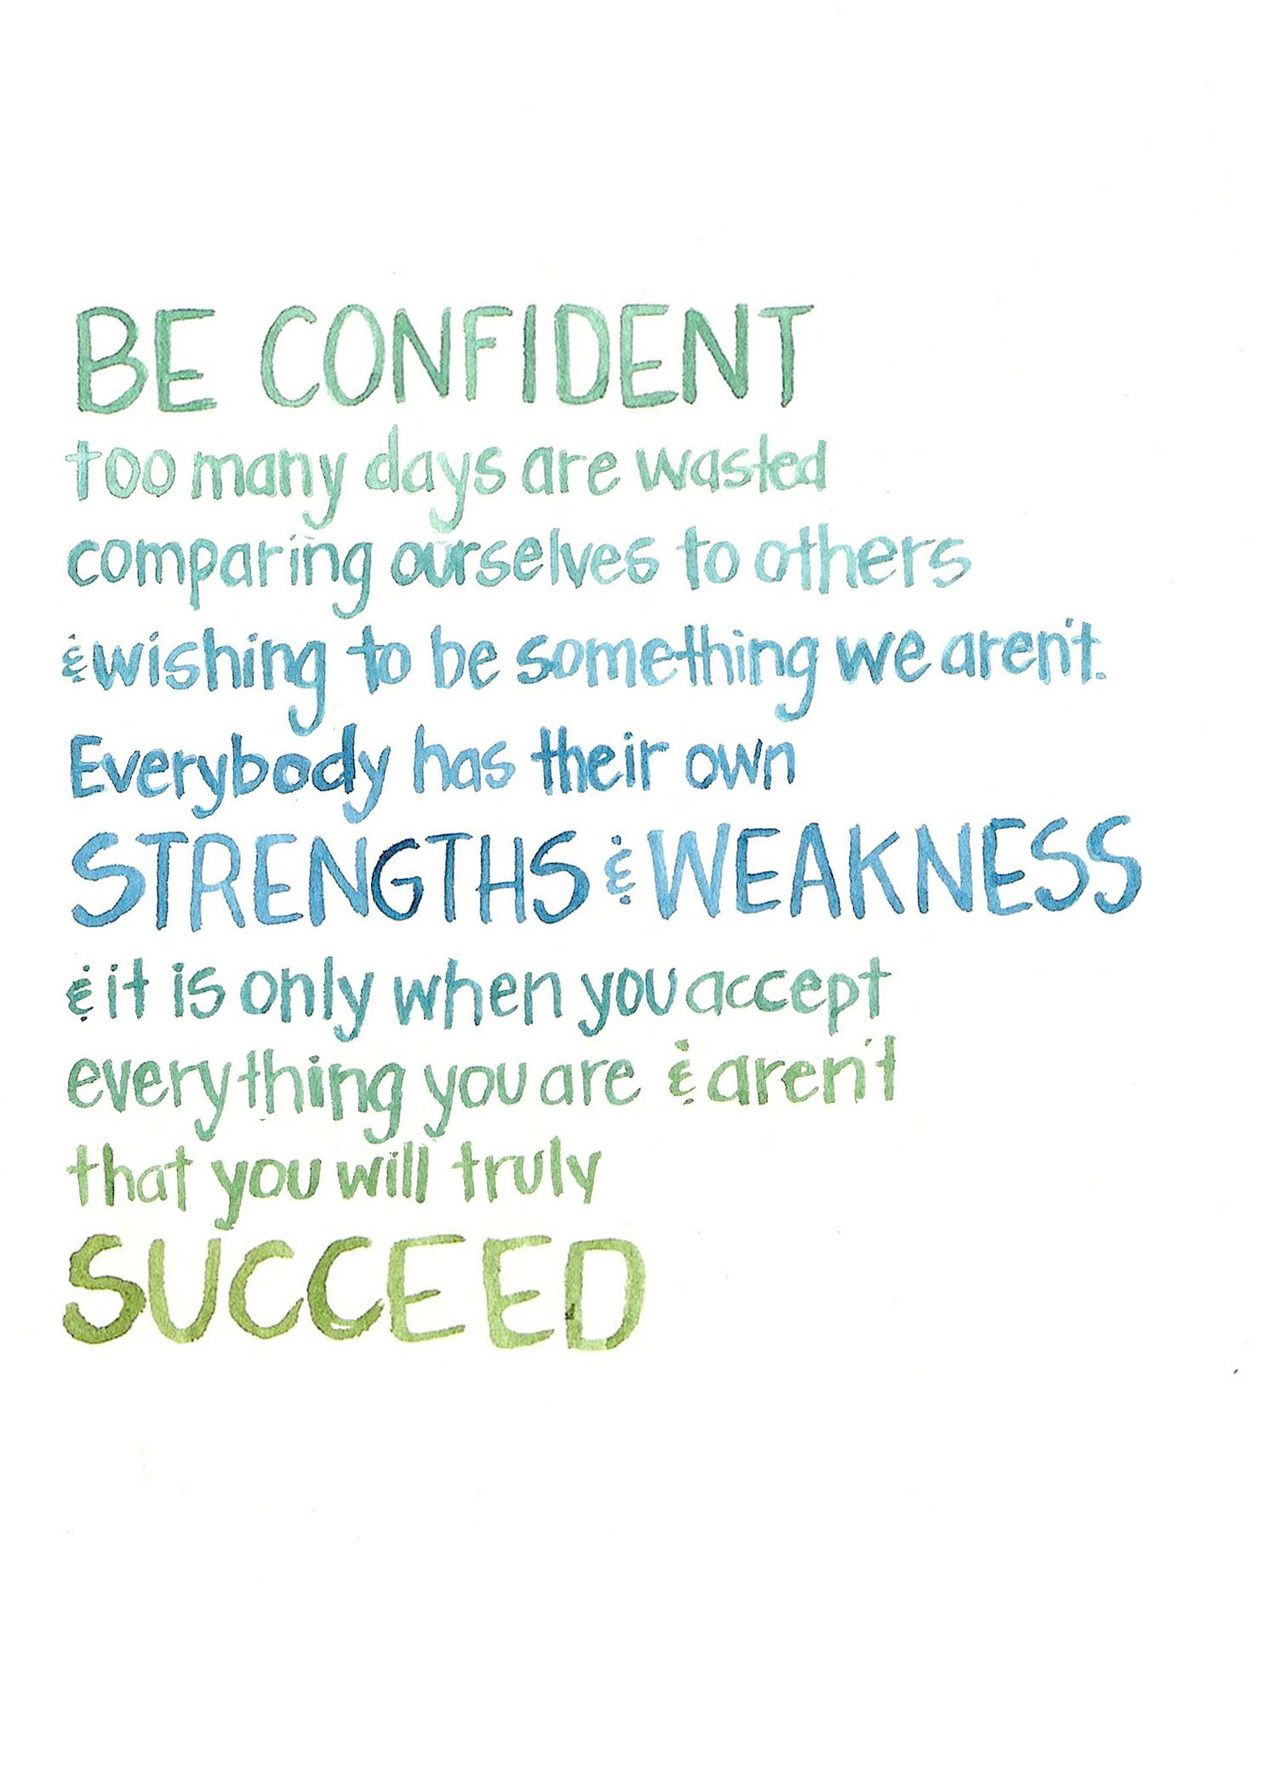 Be confident. Too many days are wasted comparing ourselves to others & wishing to be something we aren't. Everybody has their own strengths & weakness. And it is only when you accept everything you are & aren't, that you will truly succeed.